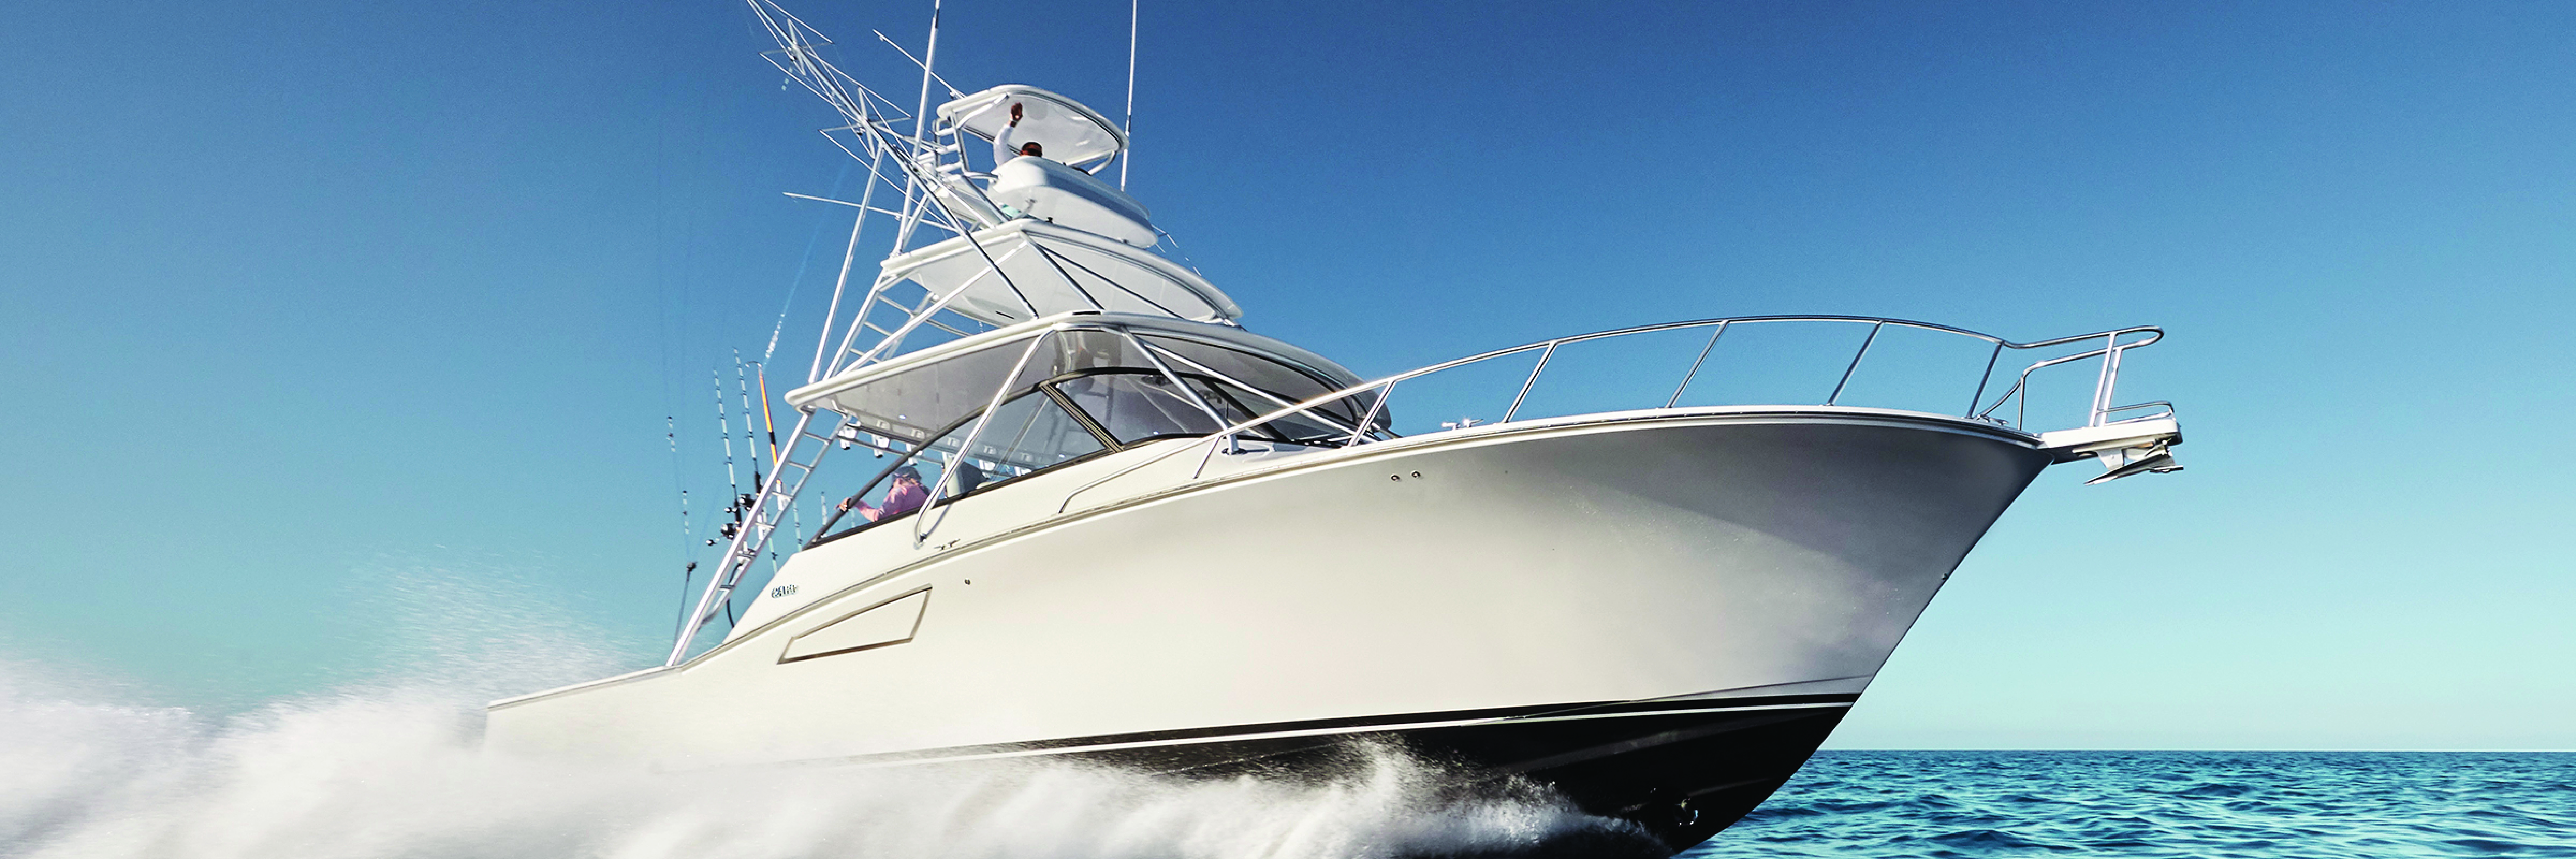 Yacht Dealers | Full-Service Brokerage - Intrinsic Yacht & Ship